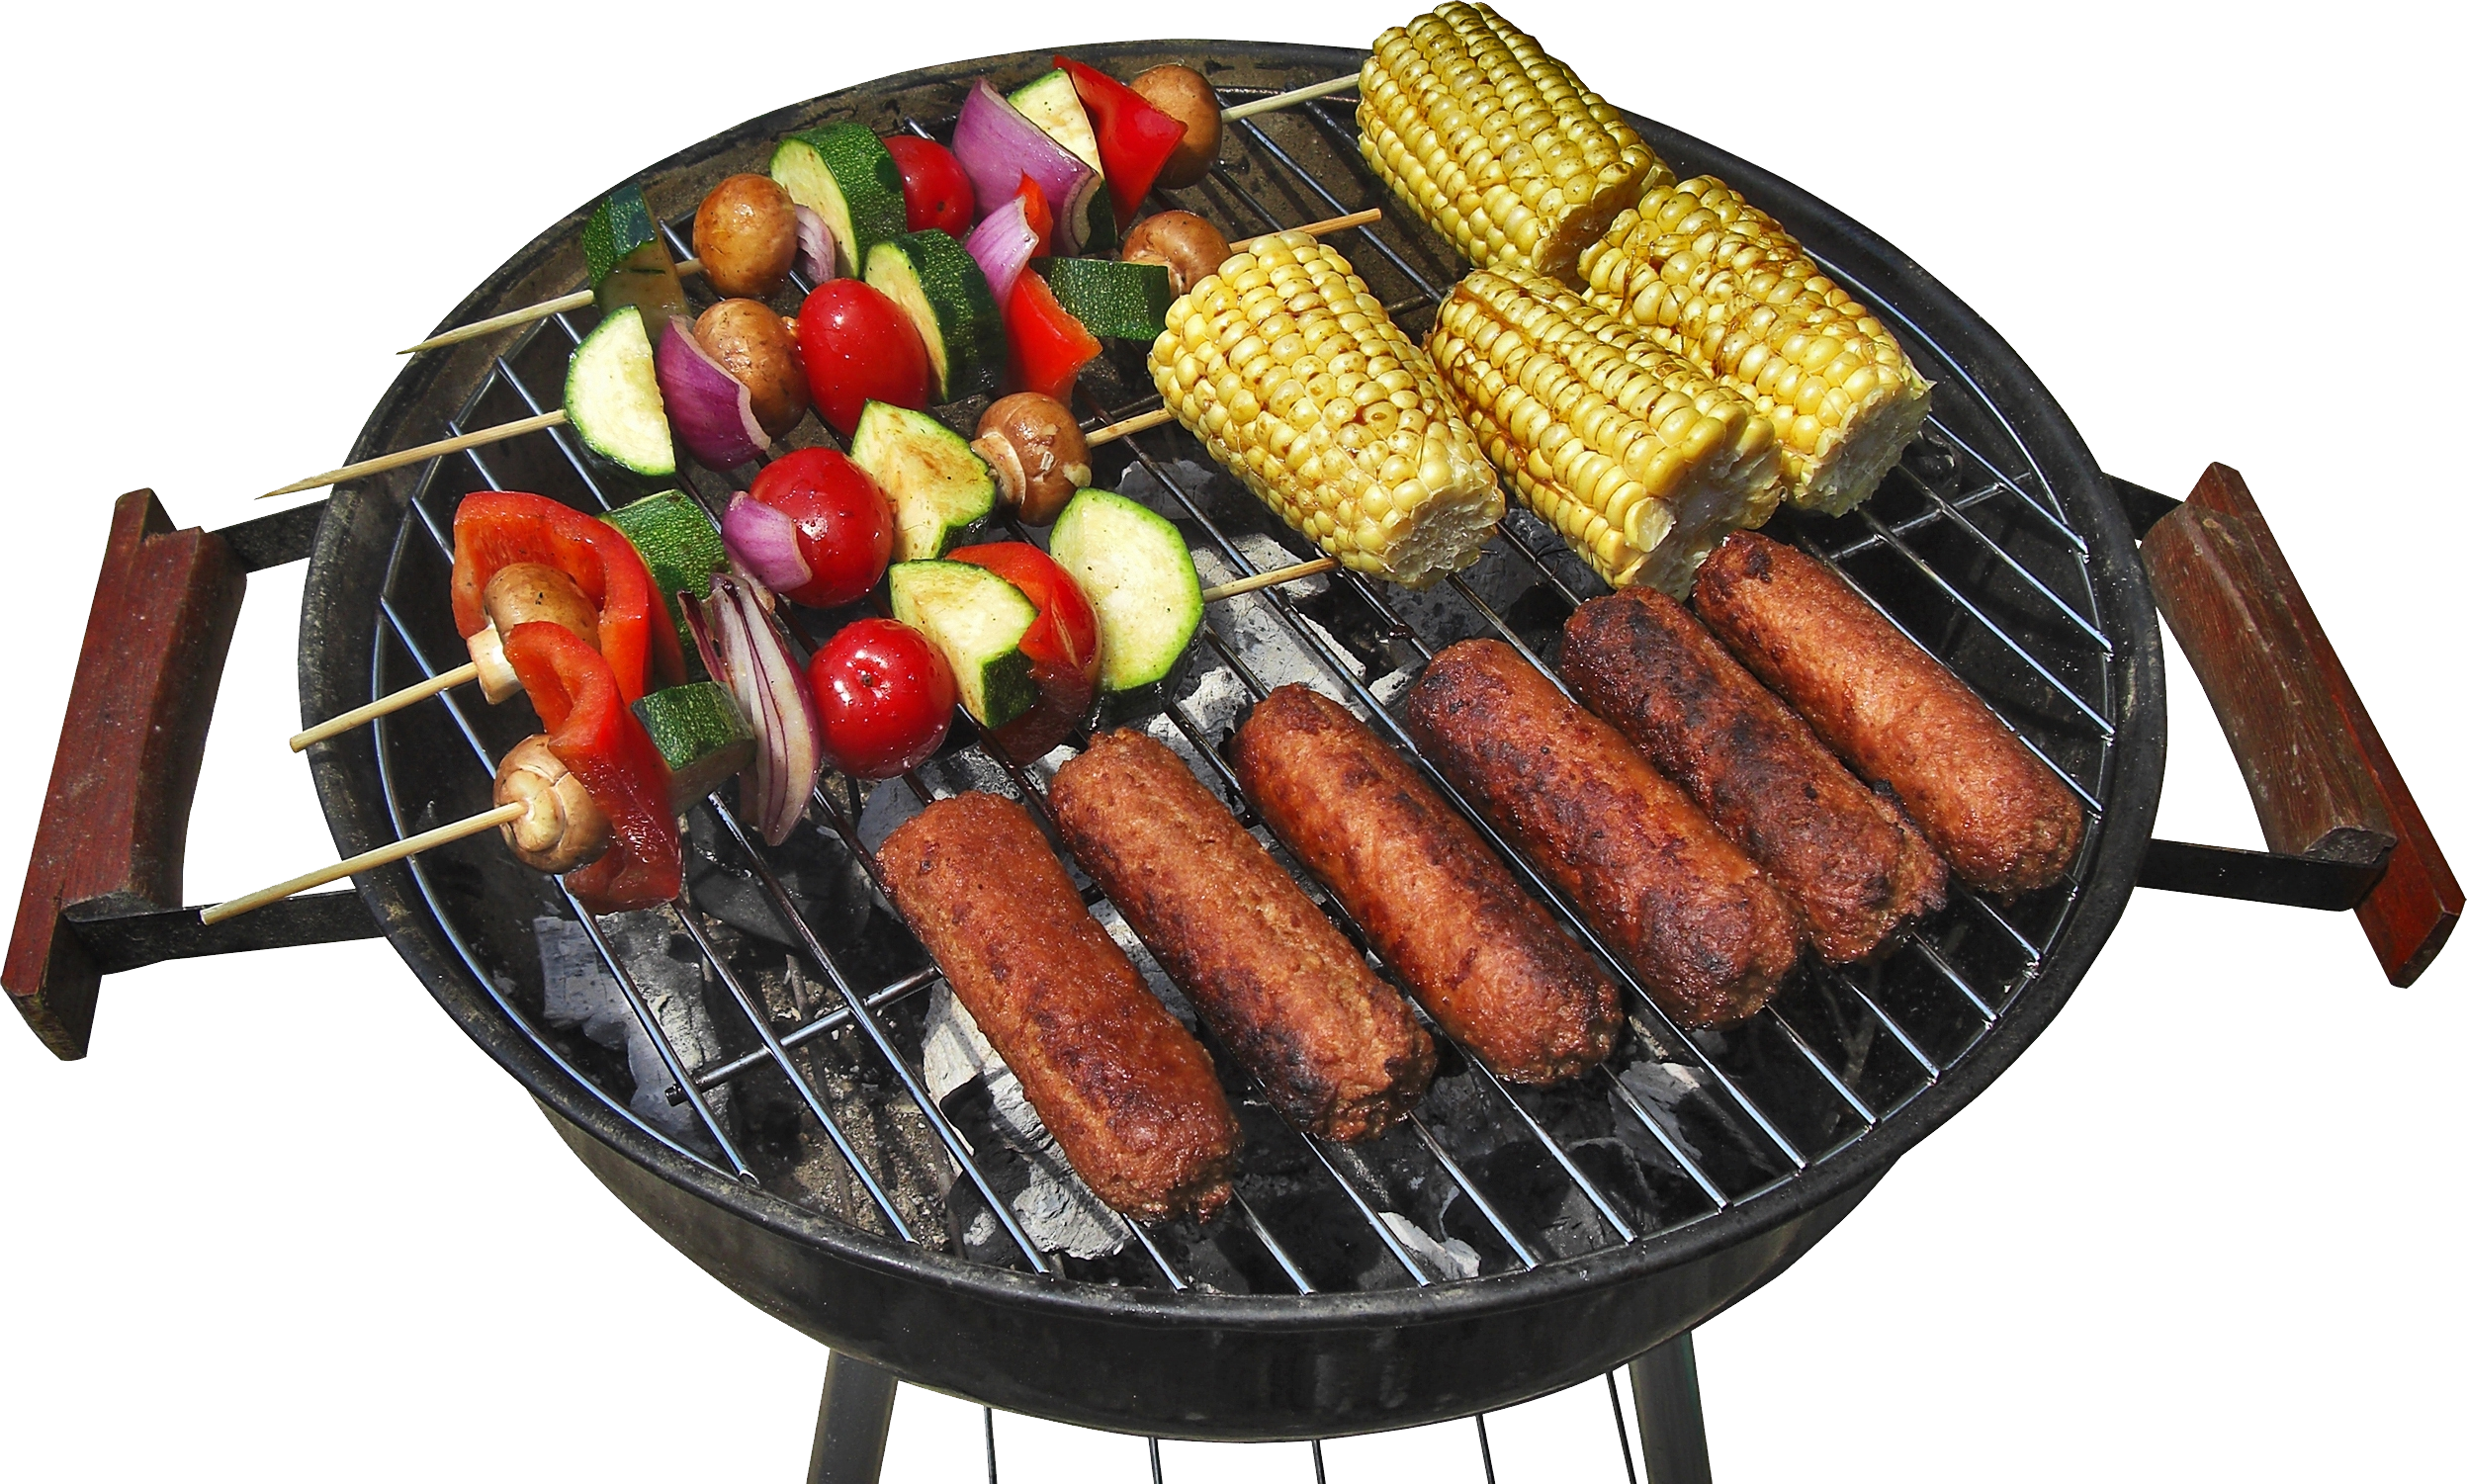 Barbecue,Grilling,Sky,Charcoal,Roasting,Cooking,Autumn,Barbecue.